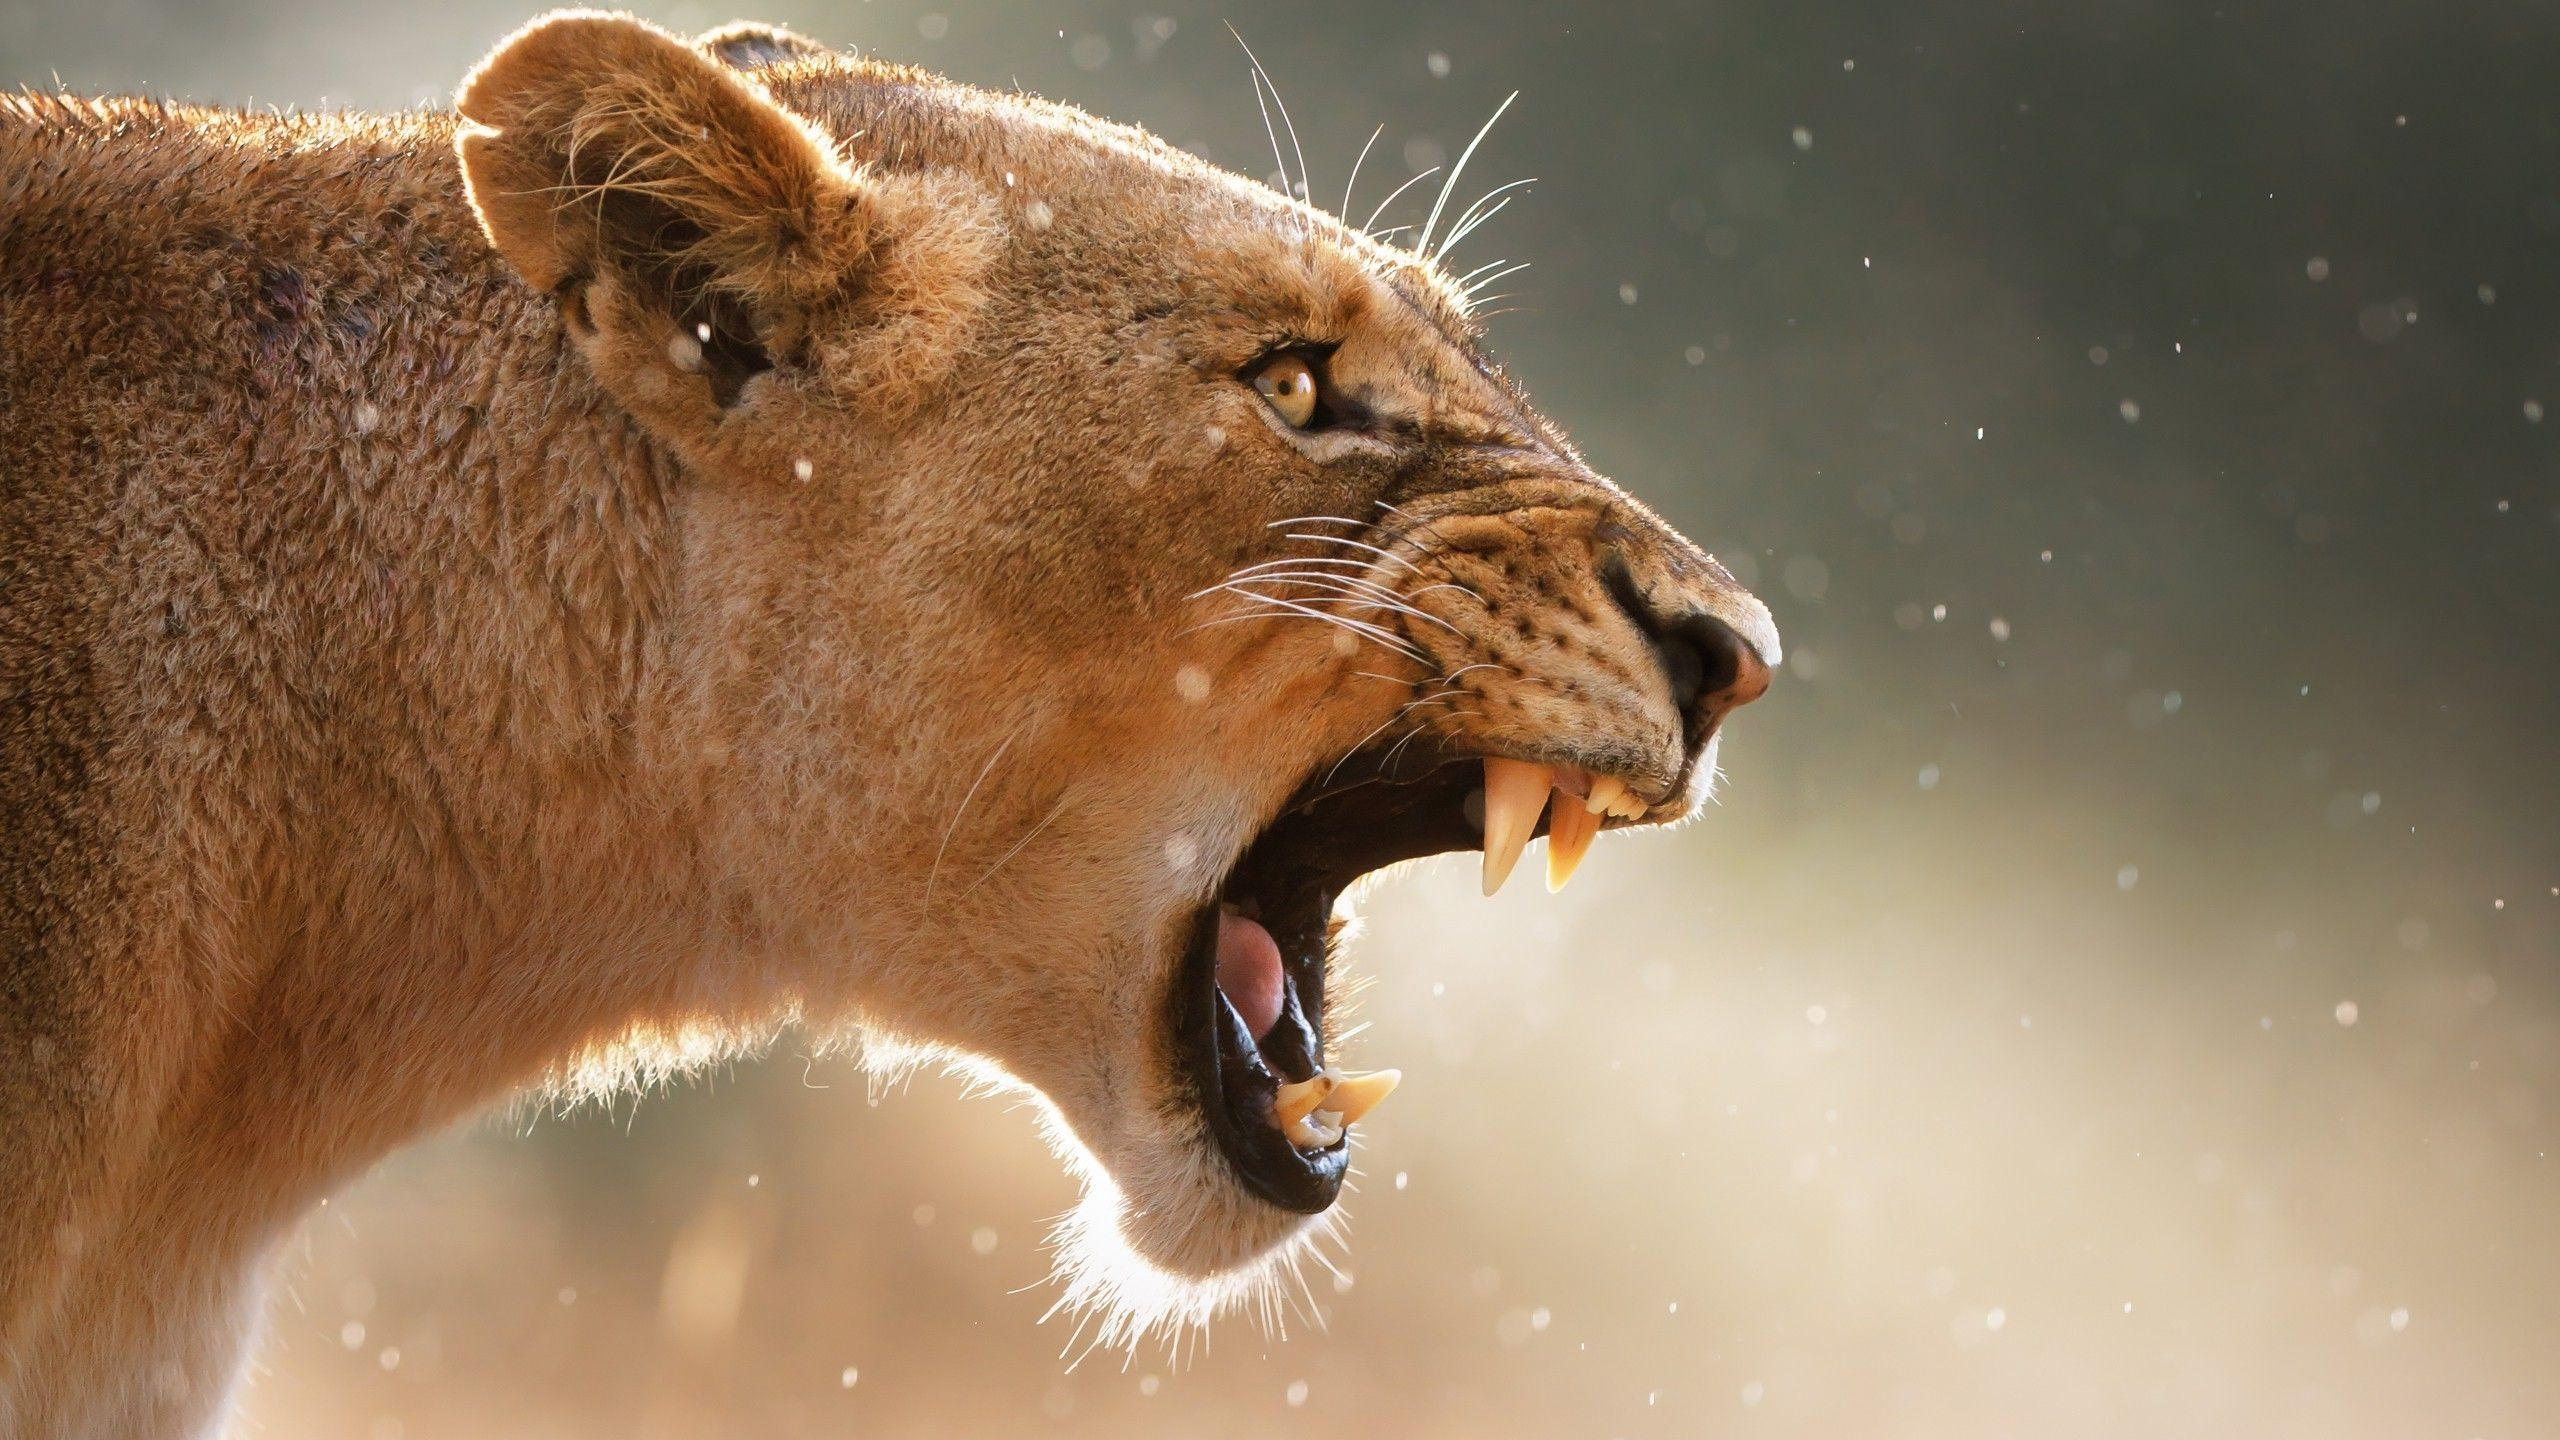 Lioness Wallpapers - Wallpaper Cave